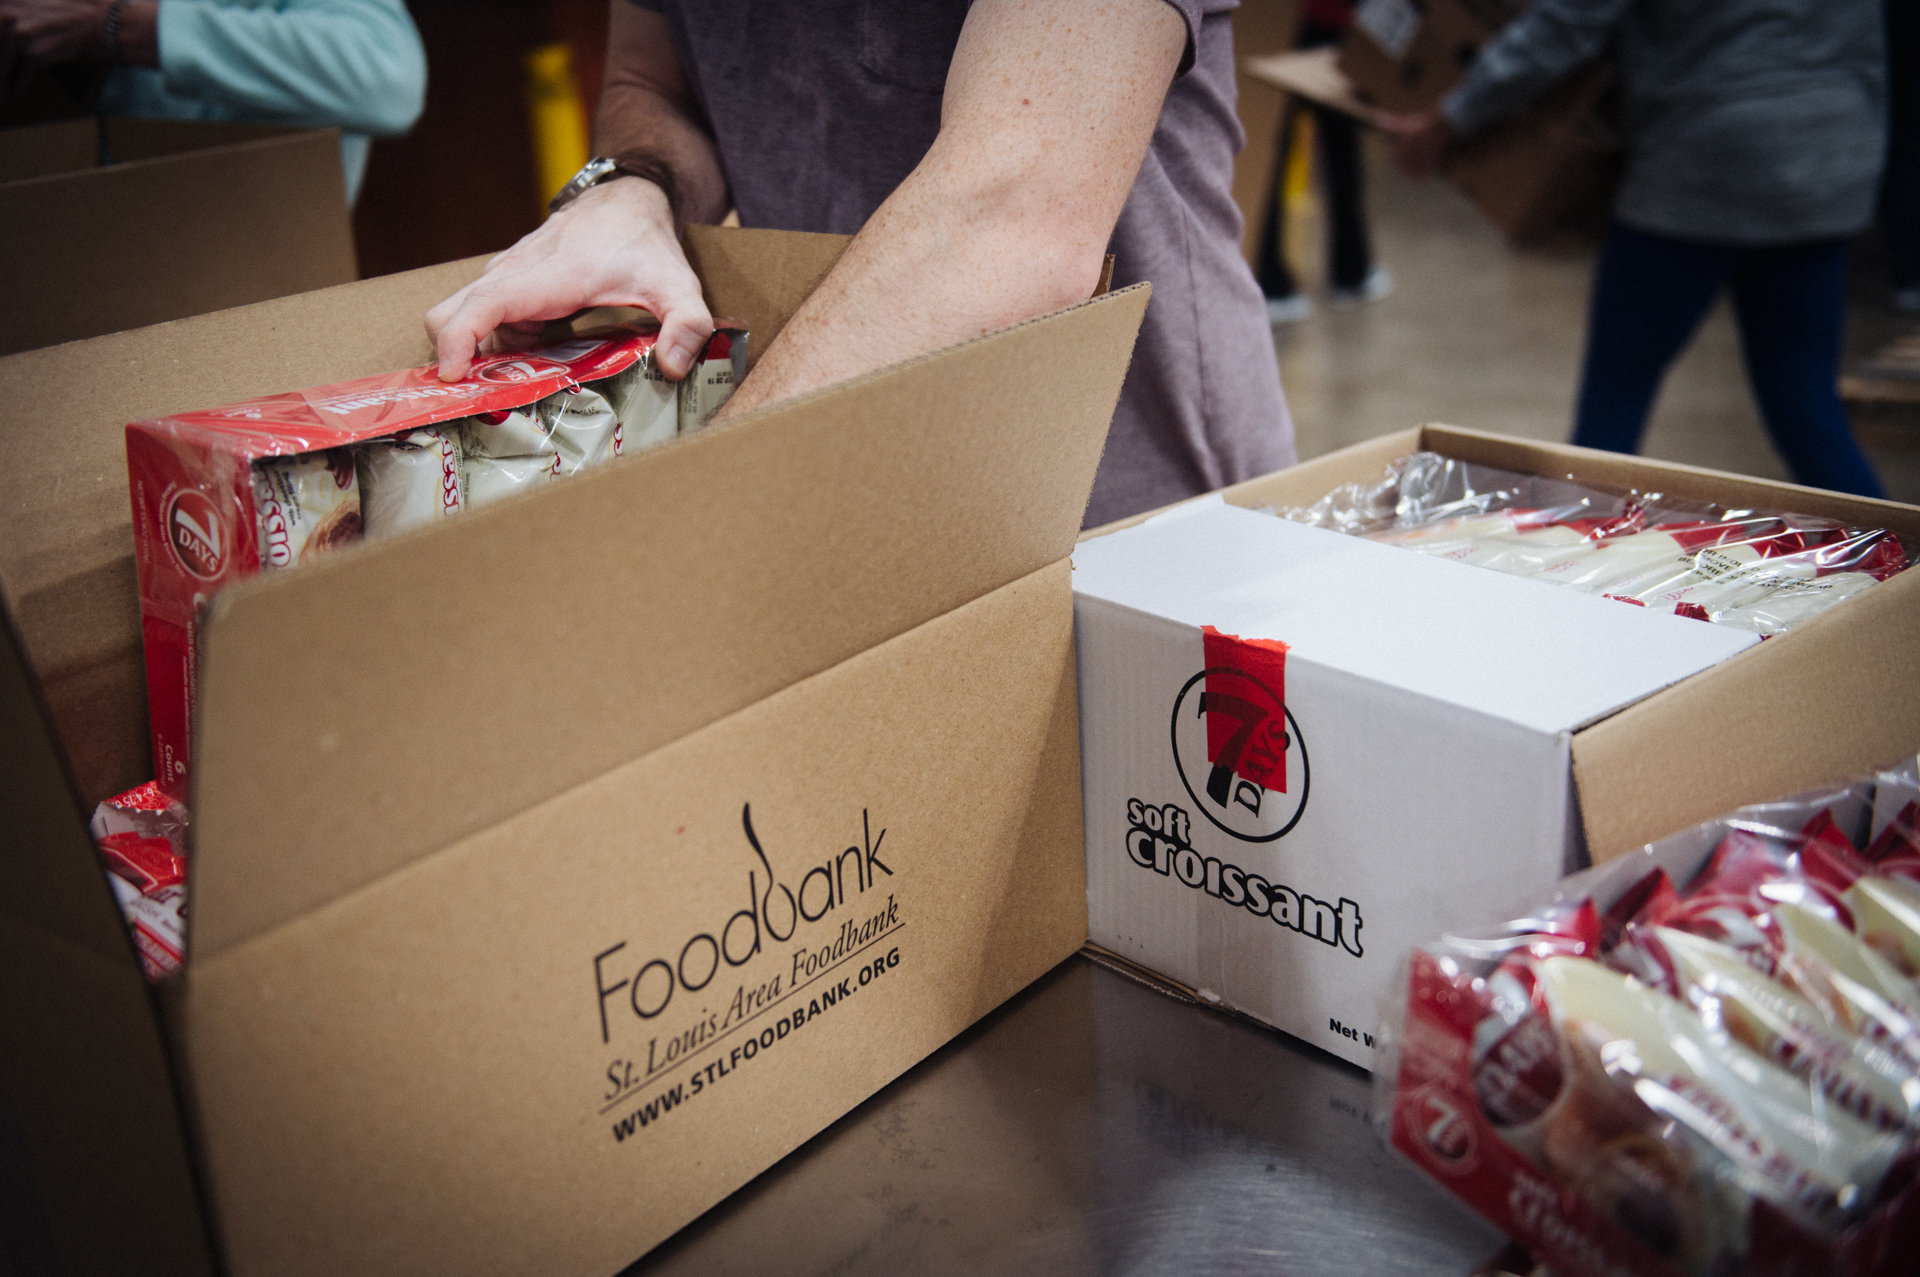 St. Louis Area Foodbank